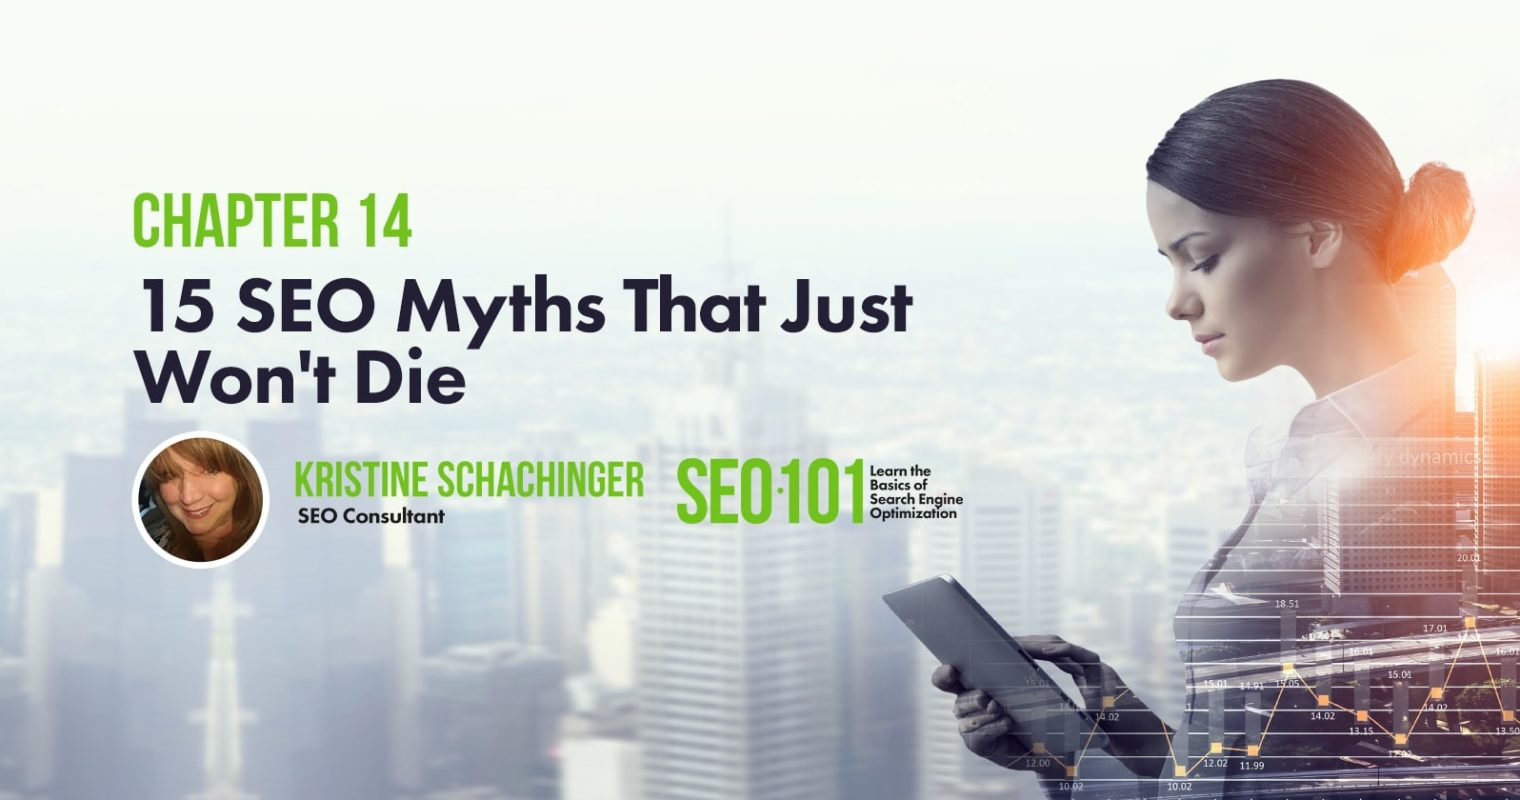 15 SEO Myths That Just Won't Die